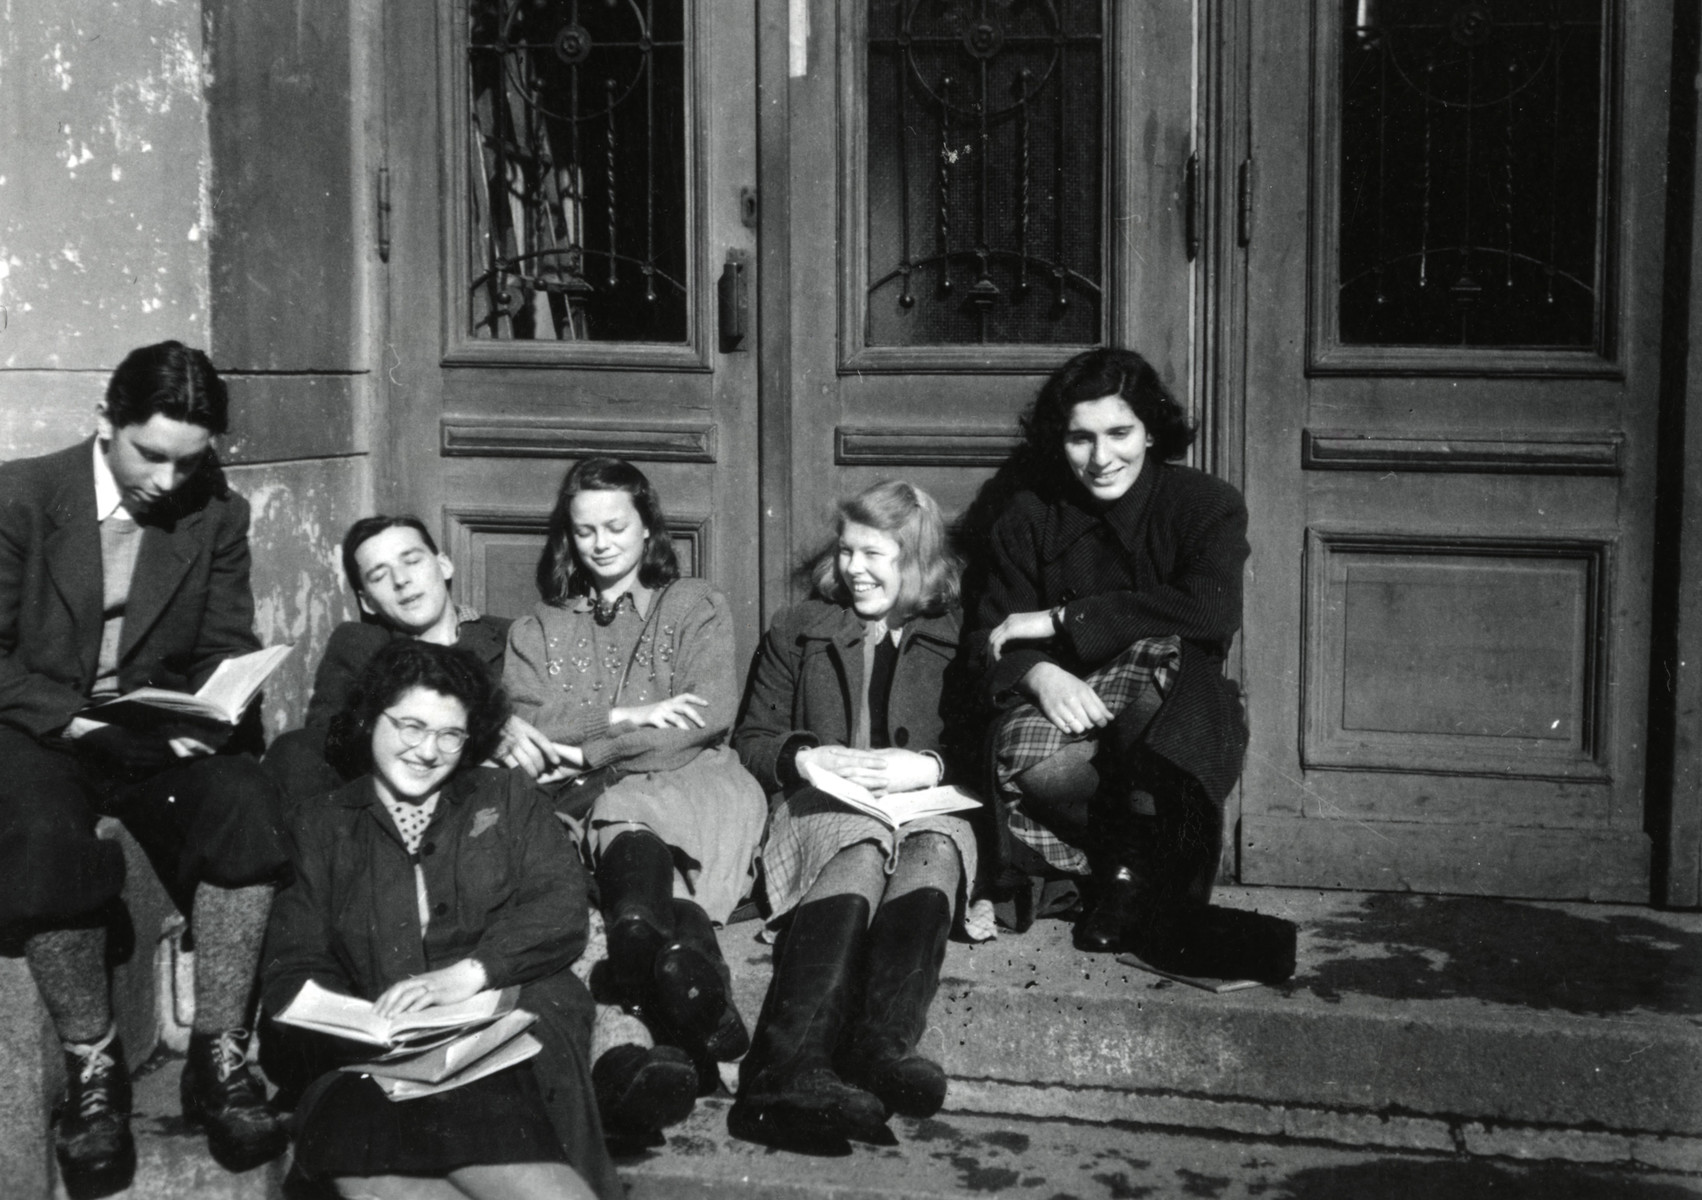 High school students sit on the the steps of the Vestheim School for Girls in Oslo, Norway.  Celia Century is in the front row holding a book.  Rachel (Tulla) Blomberg is in the back row in a dark coat.